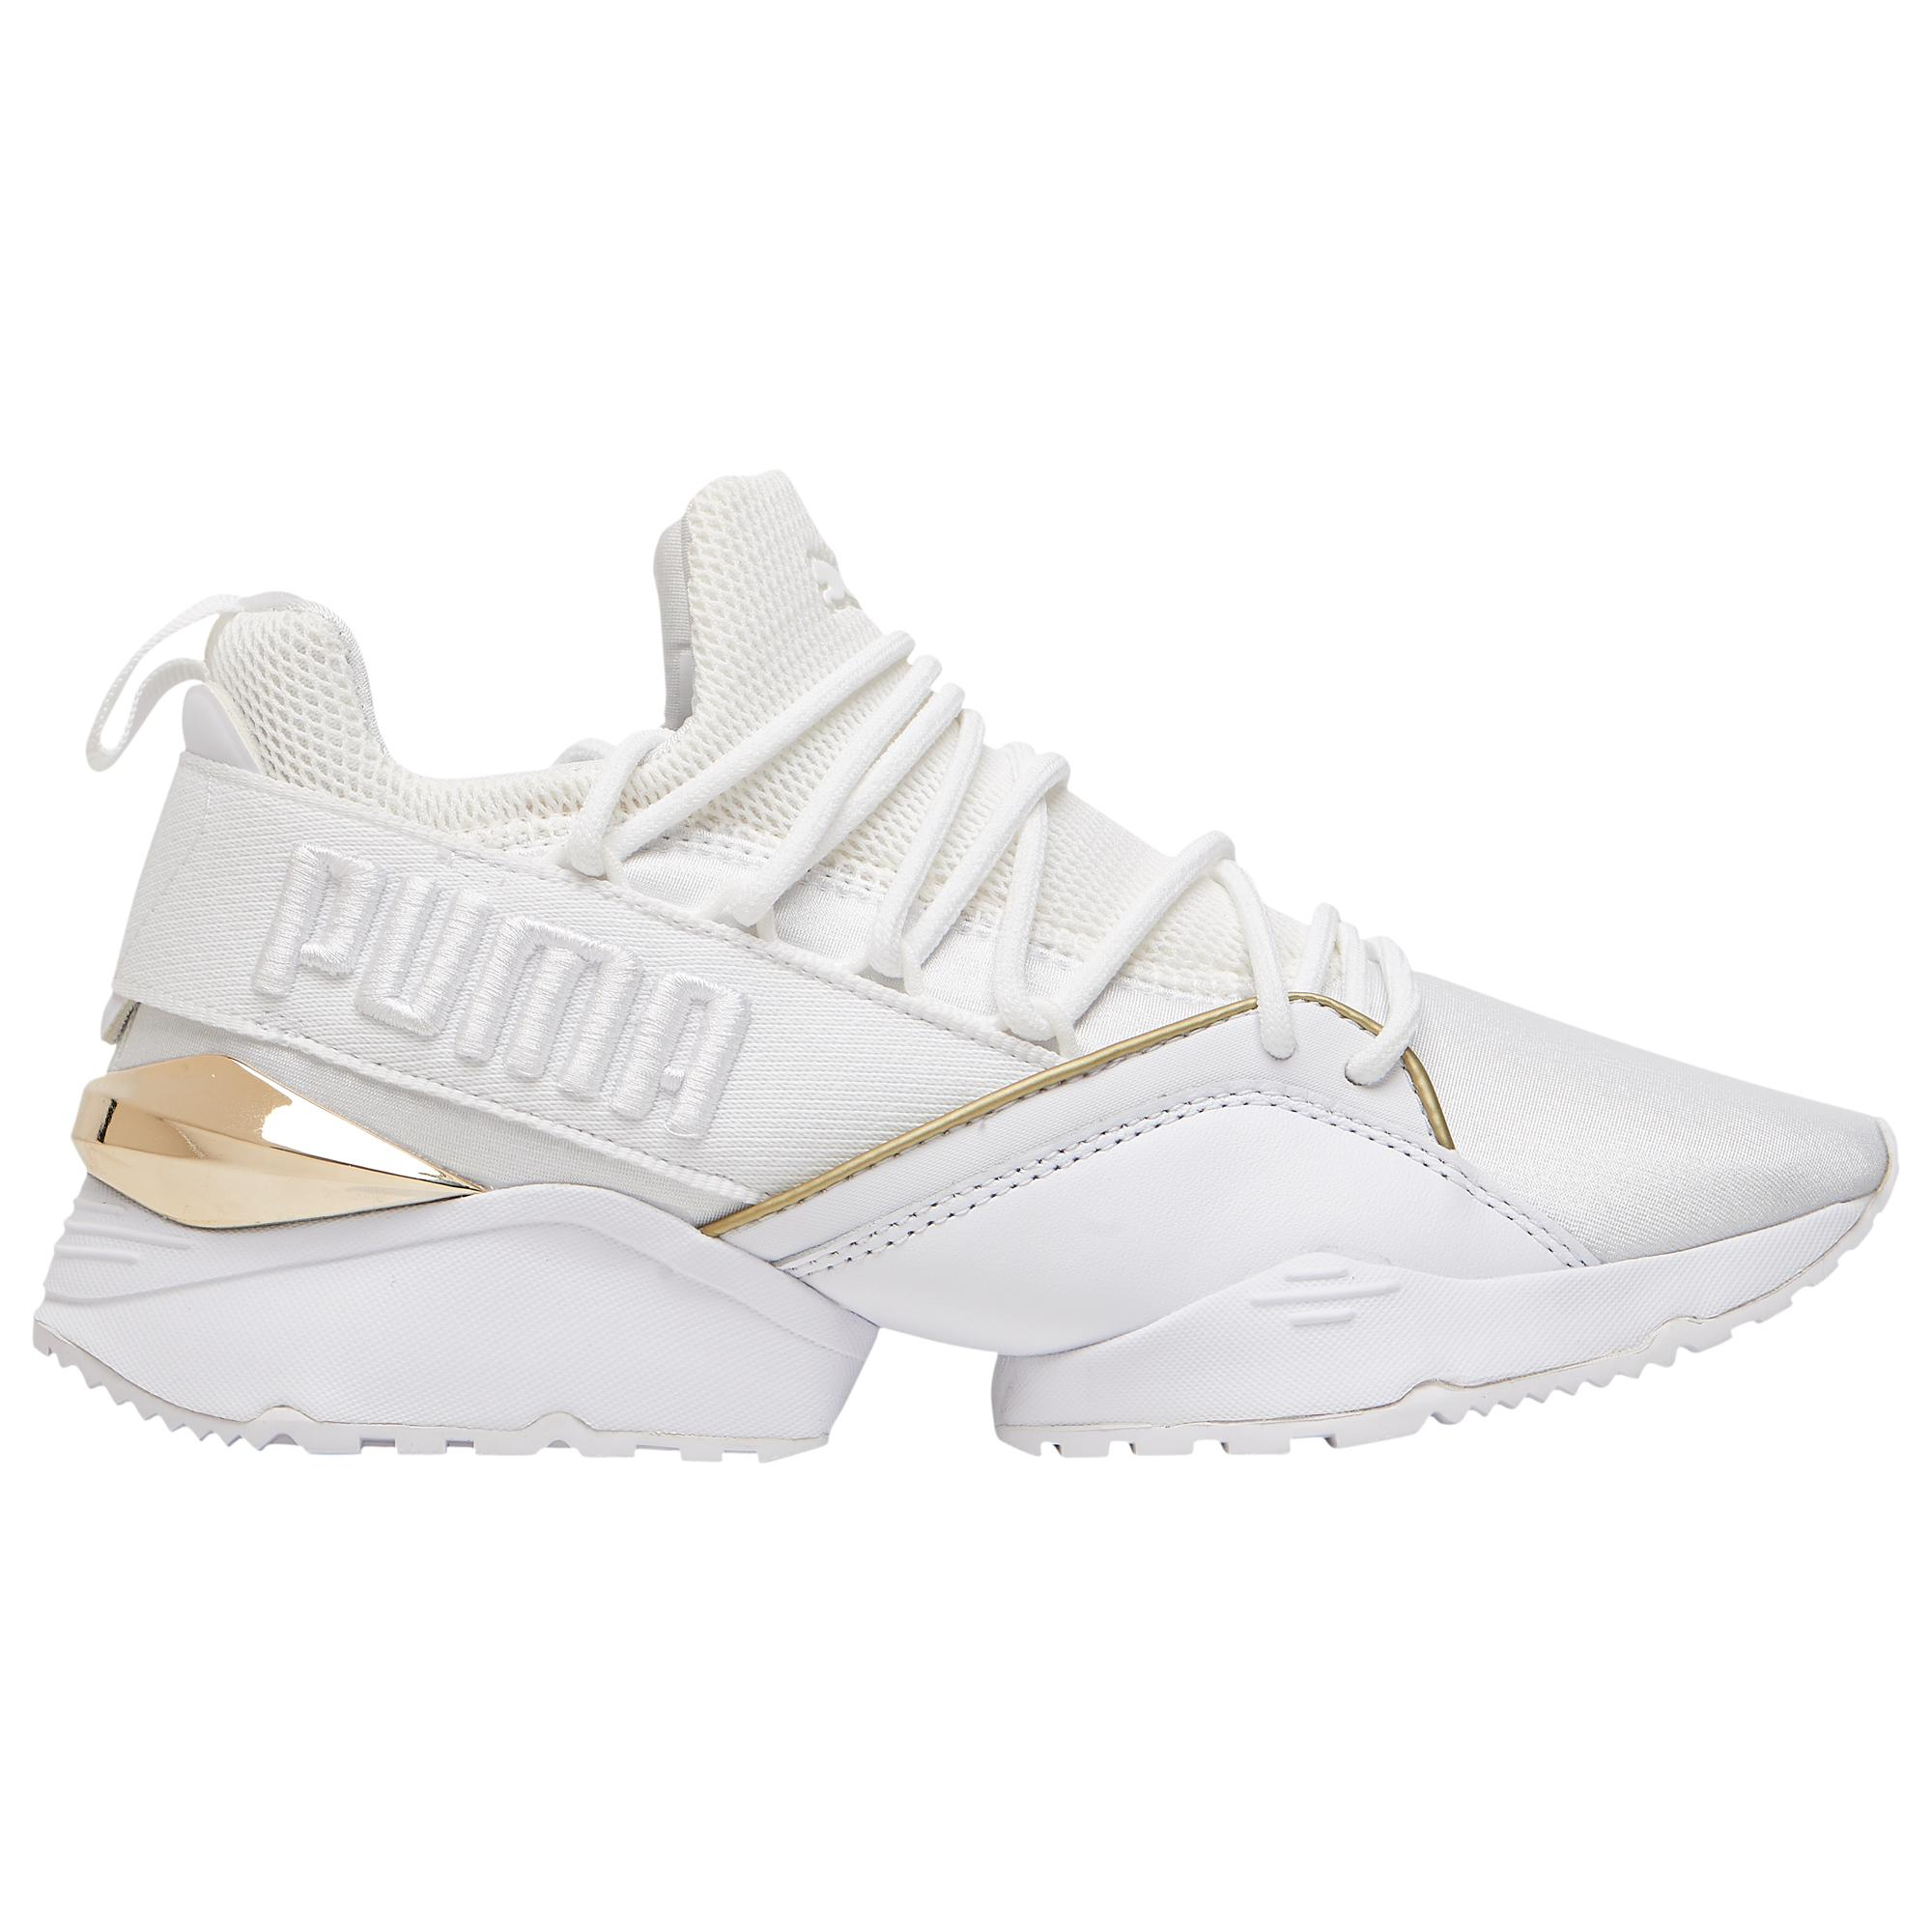 Lyst - PUMA Muse Maia Varsity in White - Save 3% 88bd3f678